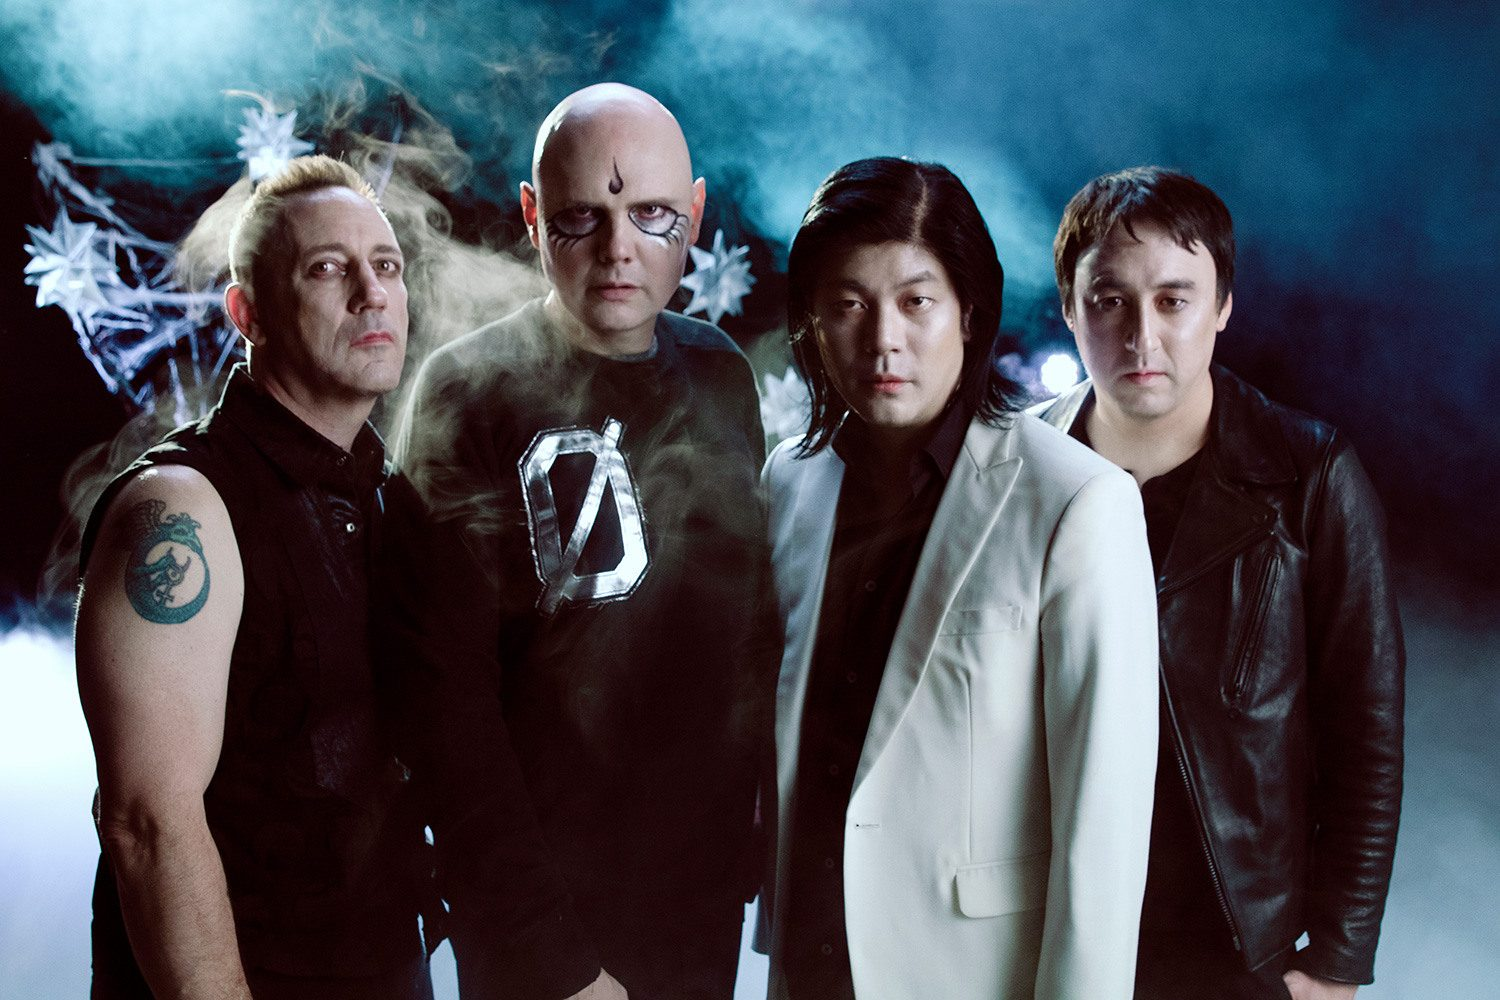 """The Smashing Pumpkins: """"There's something magical about not caring if the world blows up"""""""